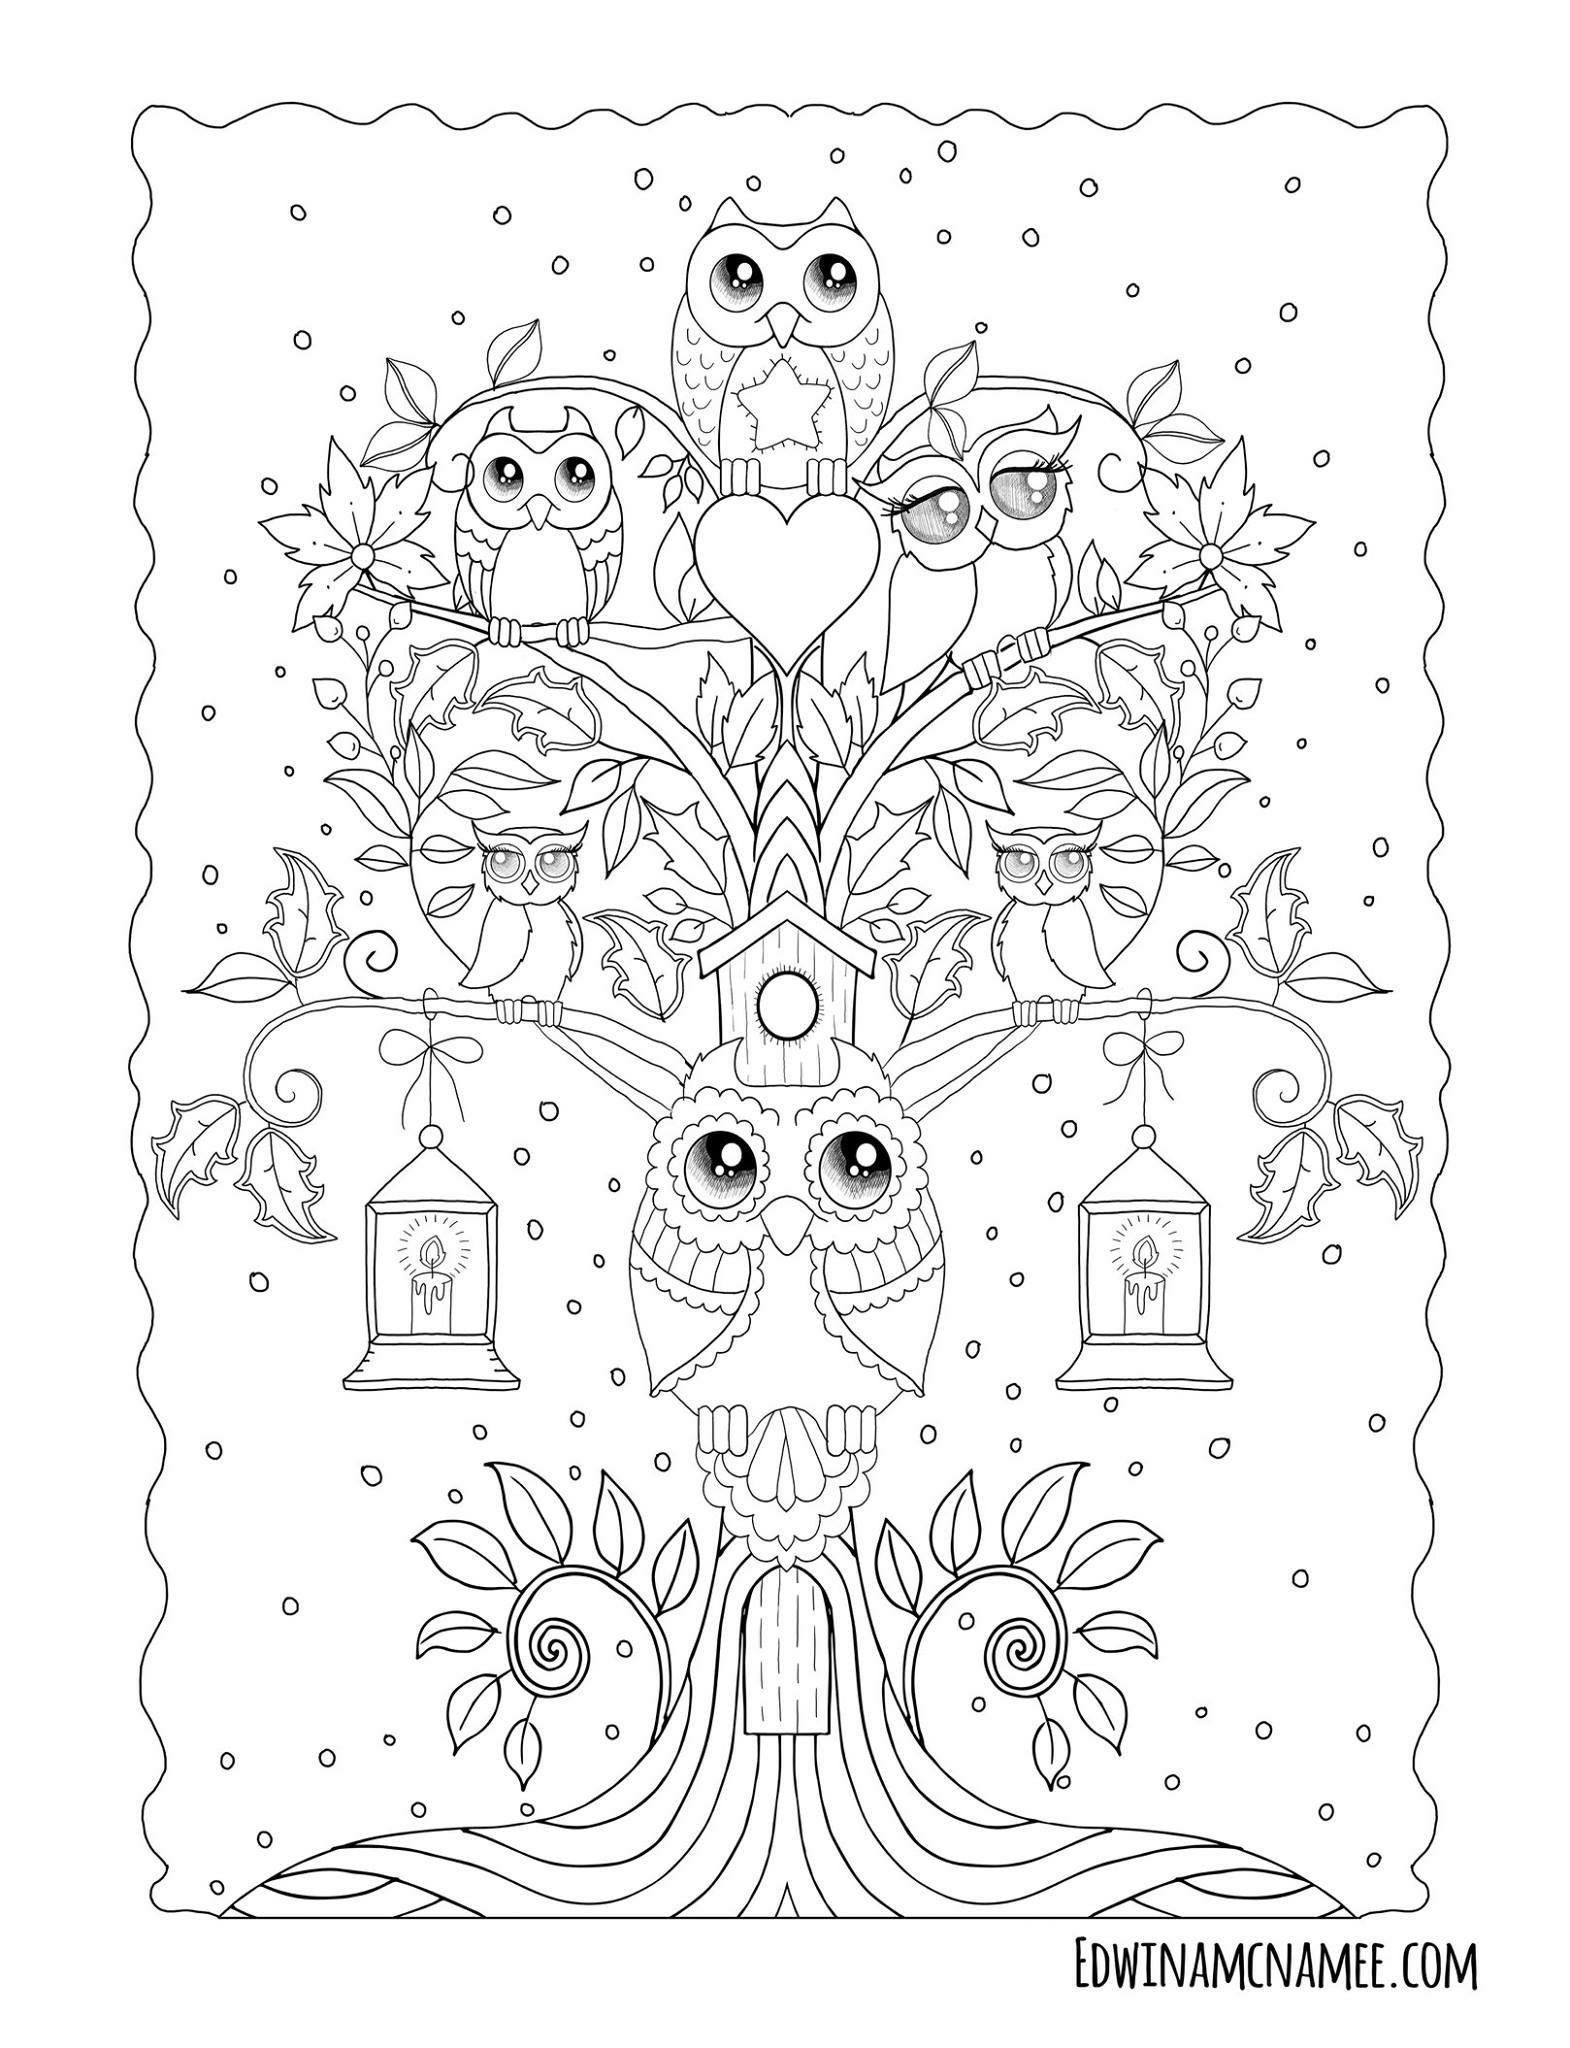 Ornamental Owls More Than 25 Fanciful Full Page Illustrations Depict The Cutest Of Owls With Big G Owl Coloring Pages Abstract Coloring Pages Coloring Book Art